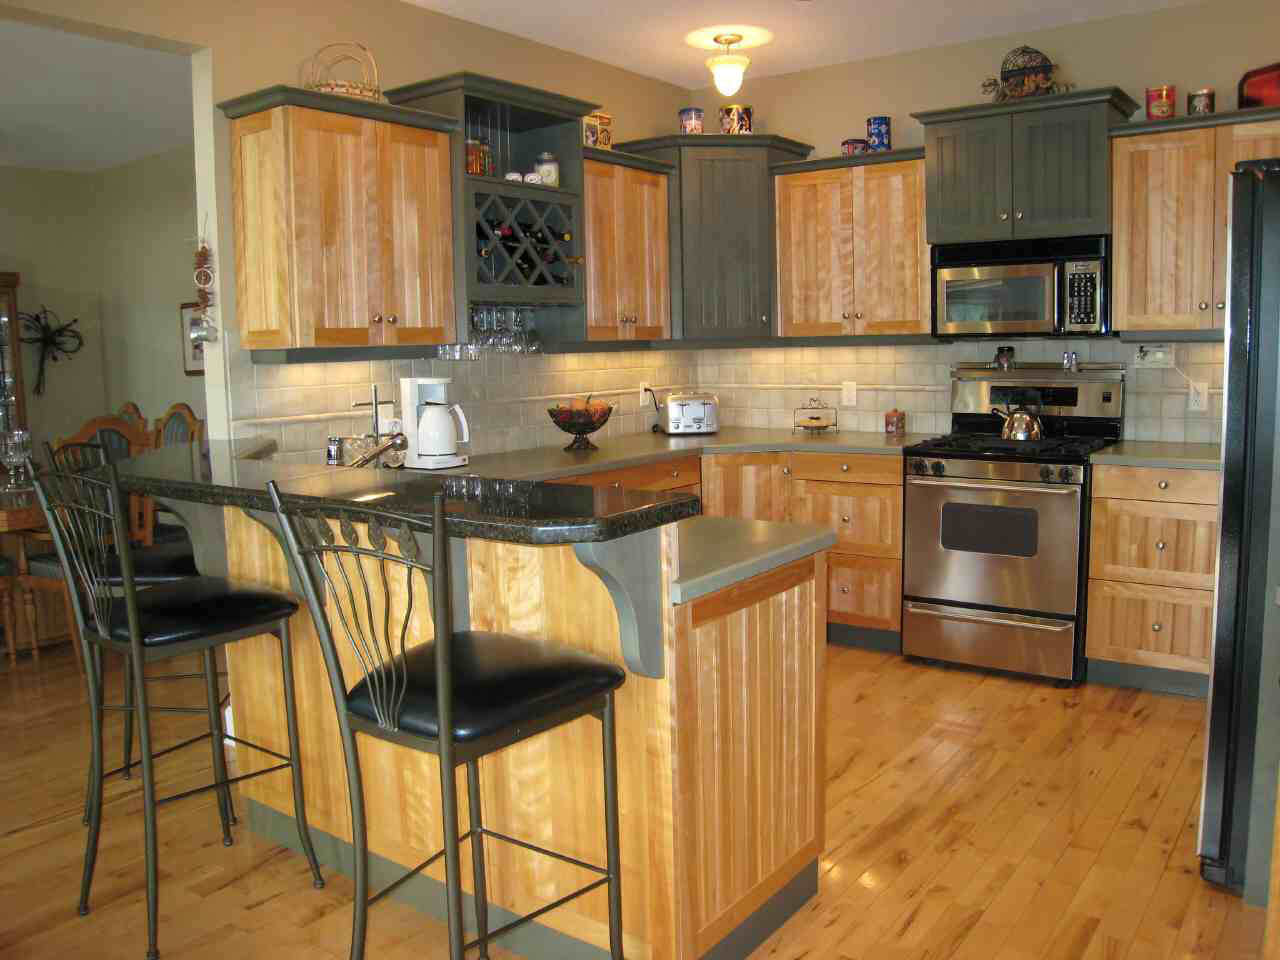 Kitchen Decoration Photos Of Beautiful Kitchen Designs Decorating Ideas